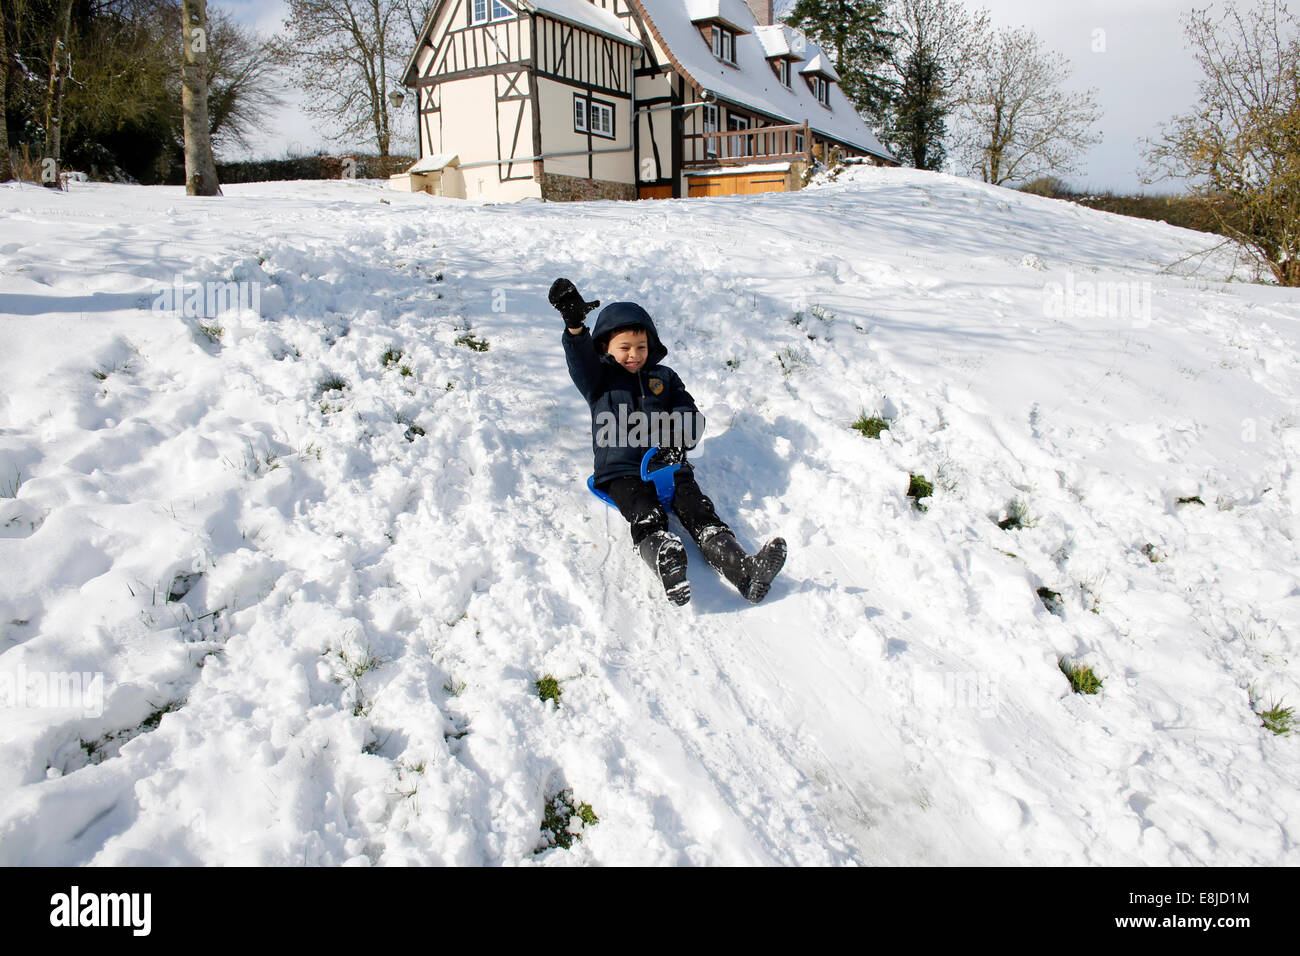 7-year-old boy sliding on a sleigh - Stock Image